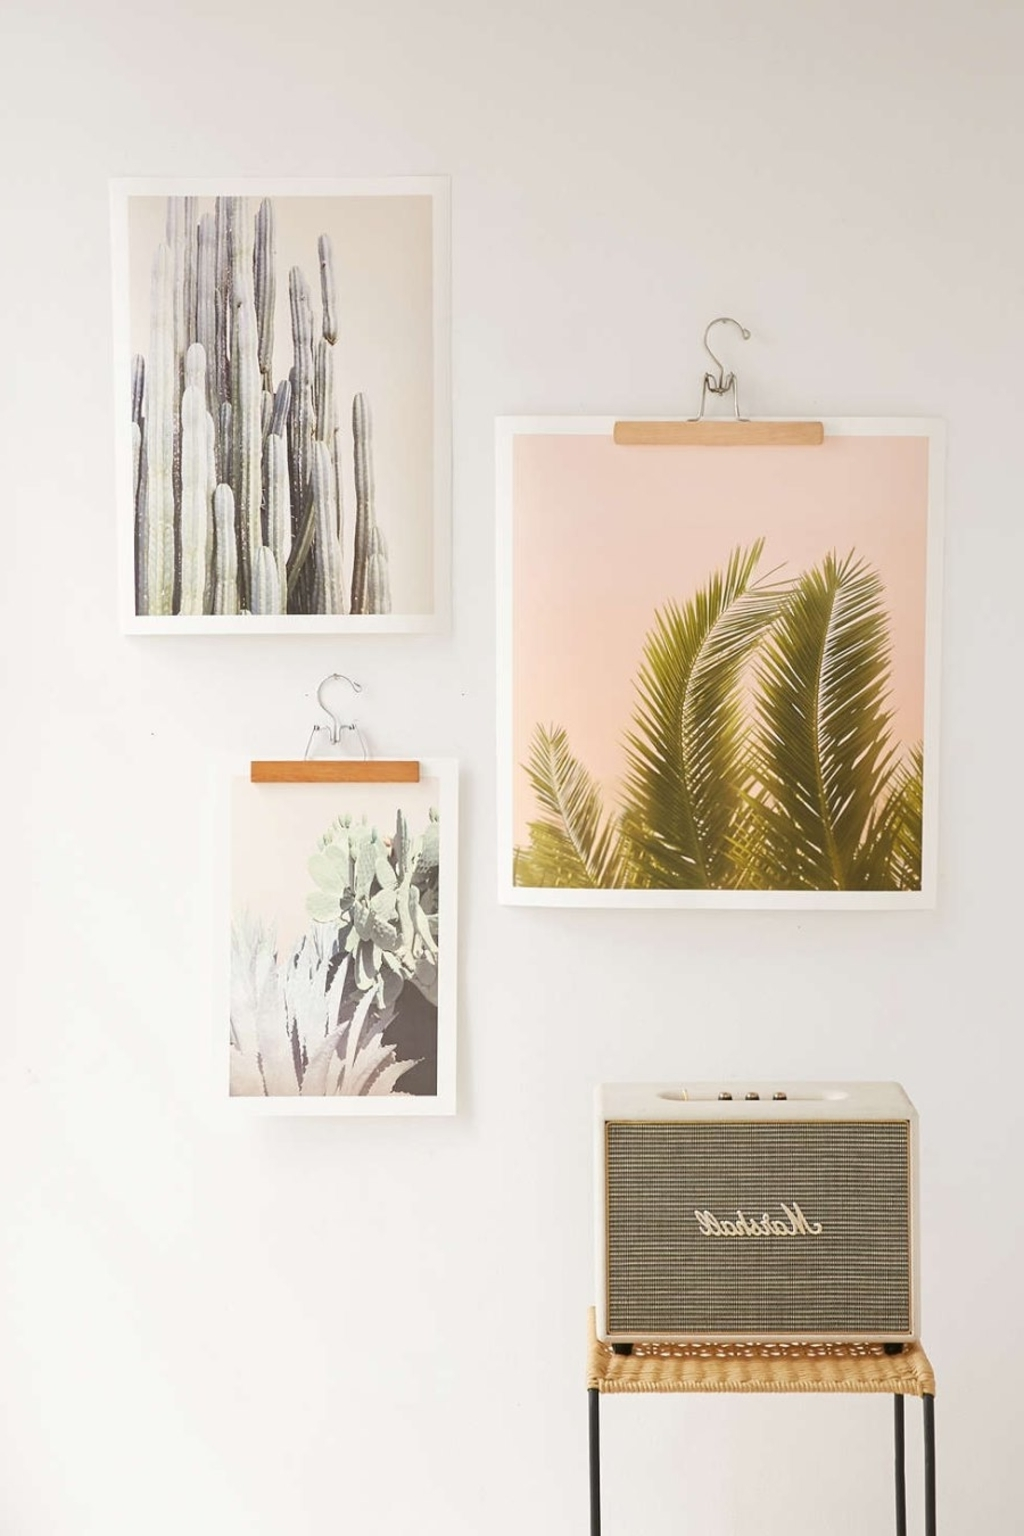 Urban Outfitters Wall Art for Most Up-to-Date Valuable Urban Outfitters Wall Art Interior Decorating Design Ideas